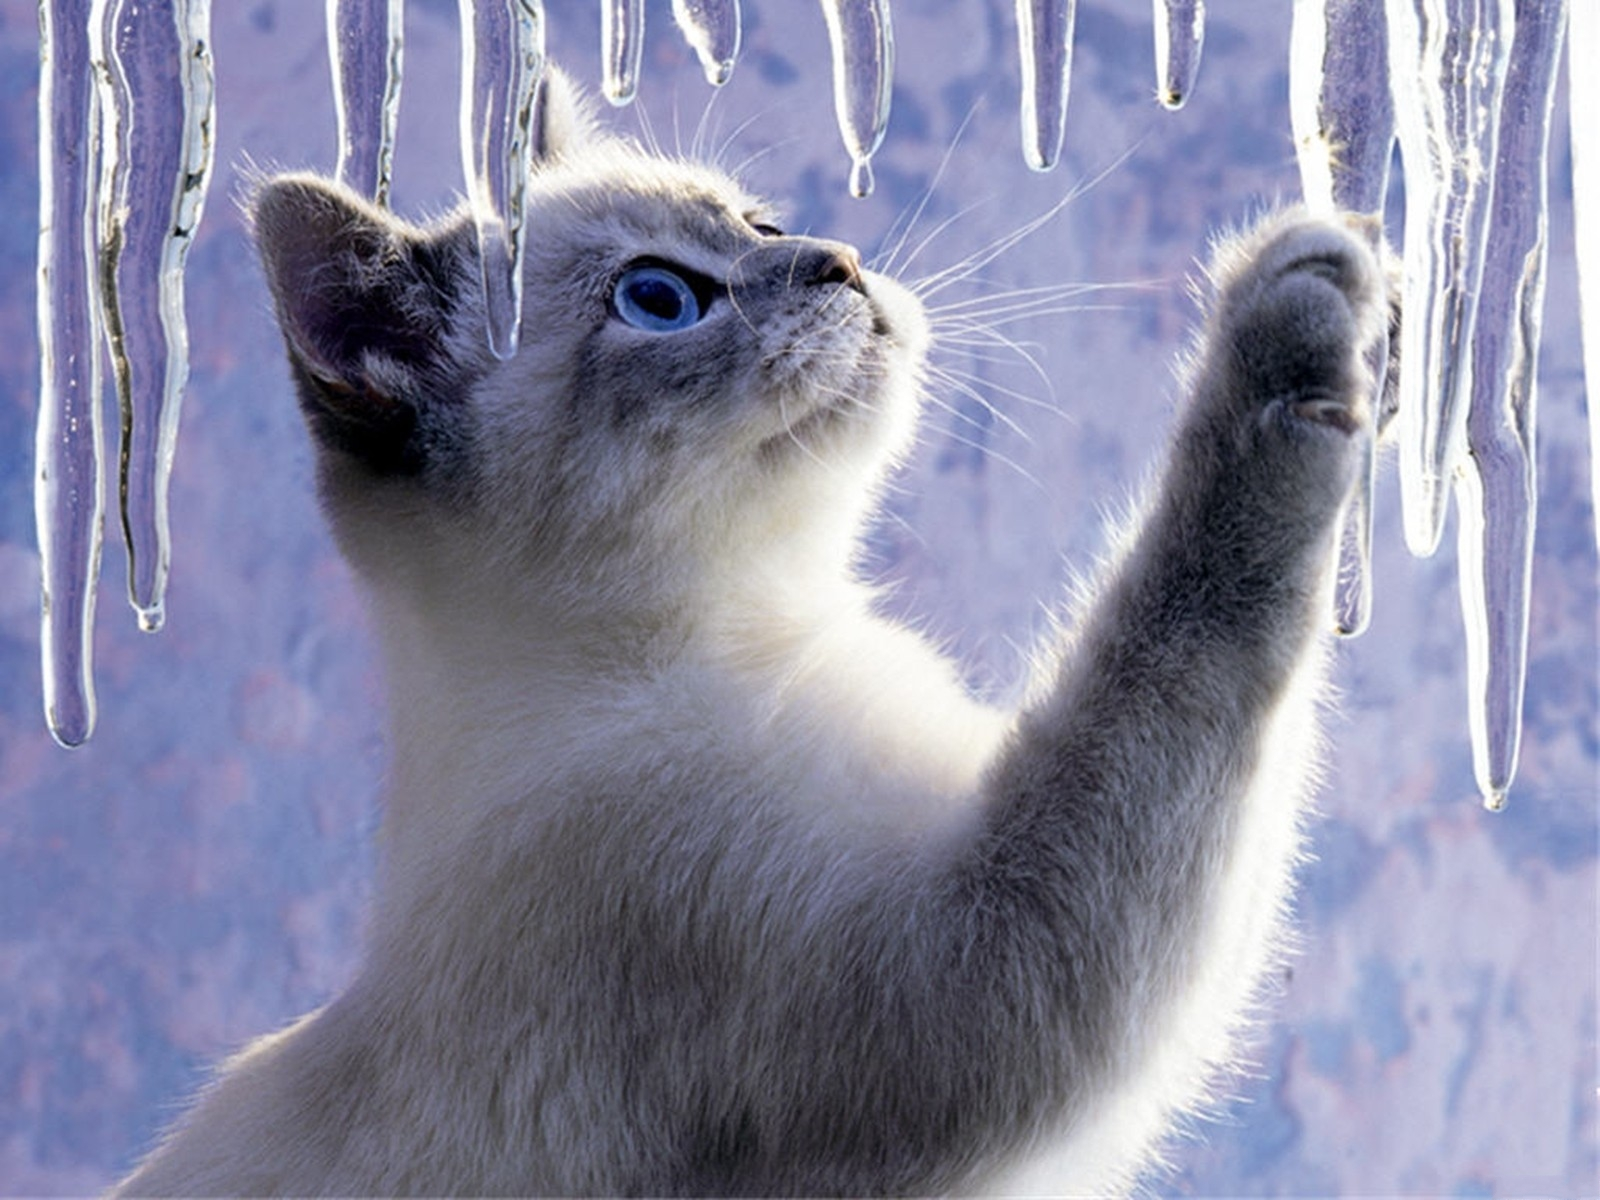 Wallpaper So Freakin Cute Cats Cats Images Ice Cat Hd Wallpaper And Background Photos